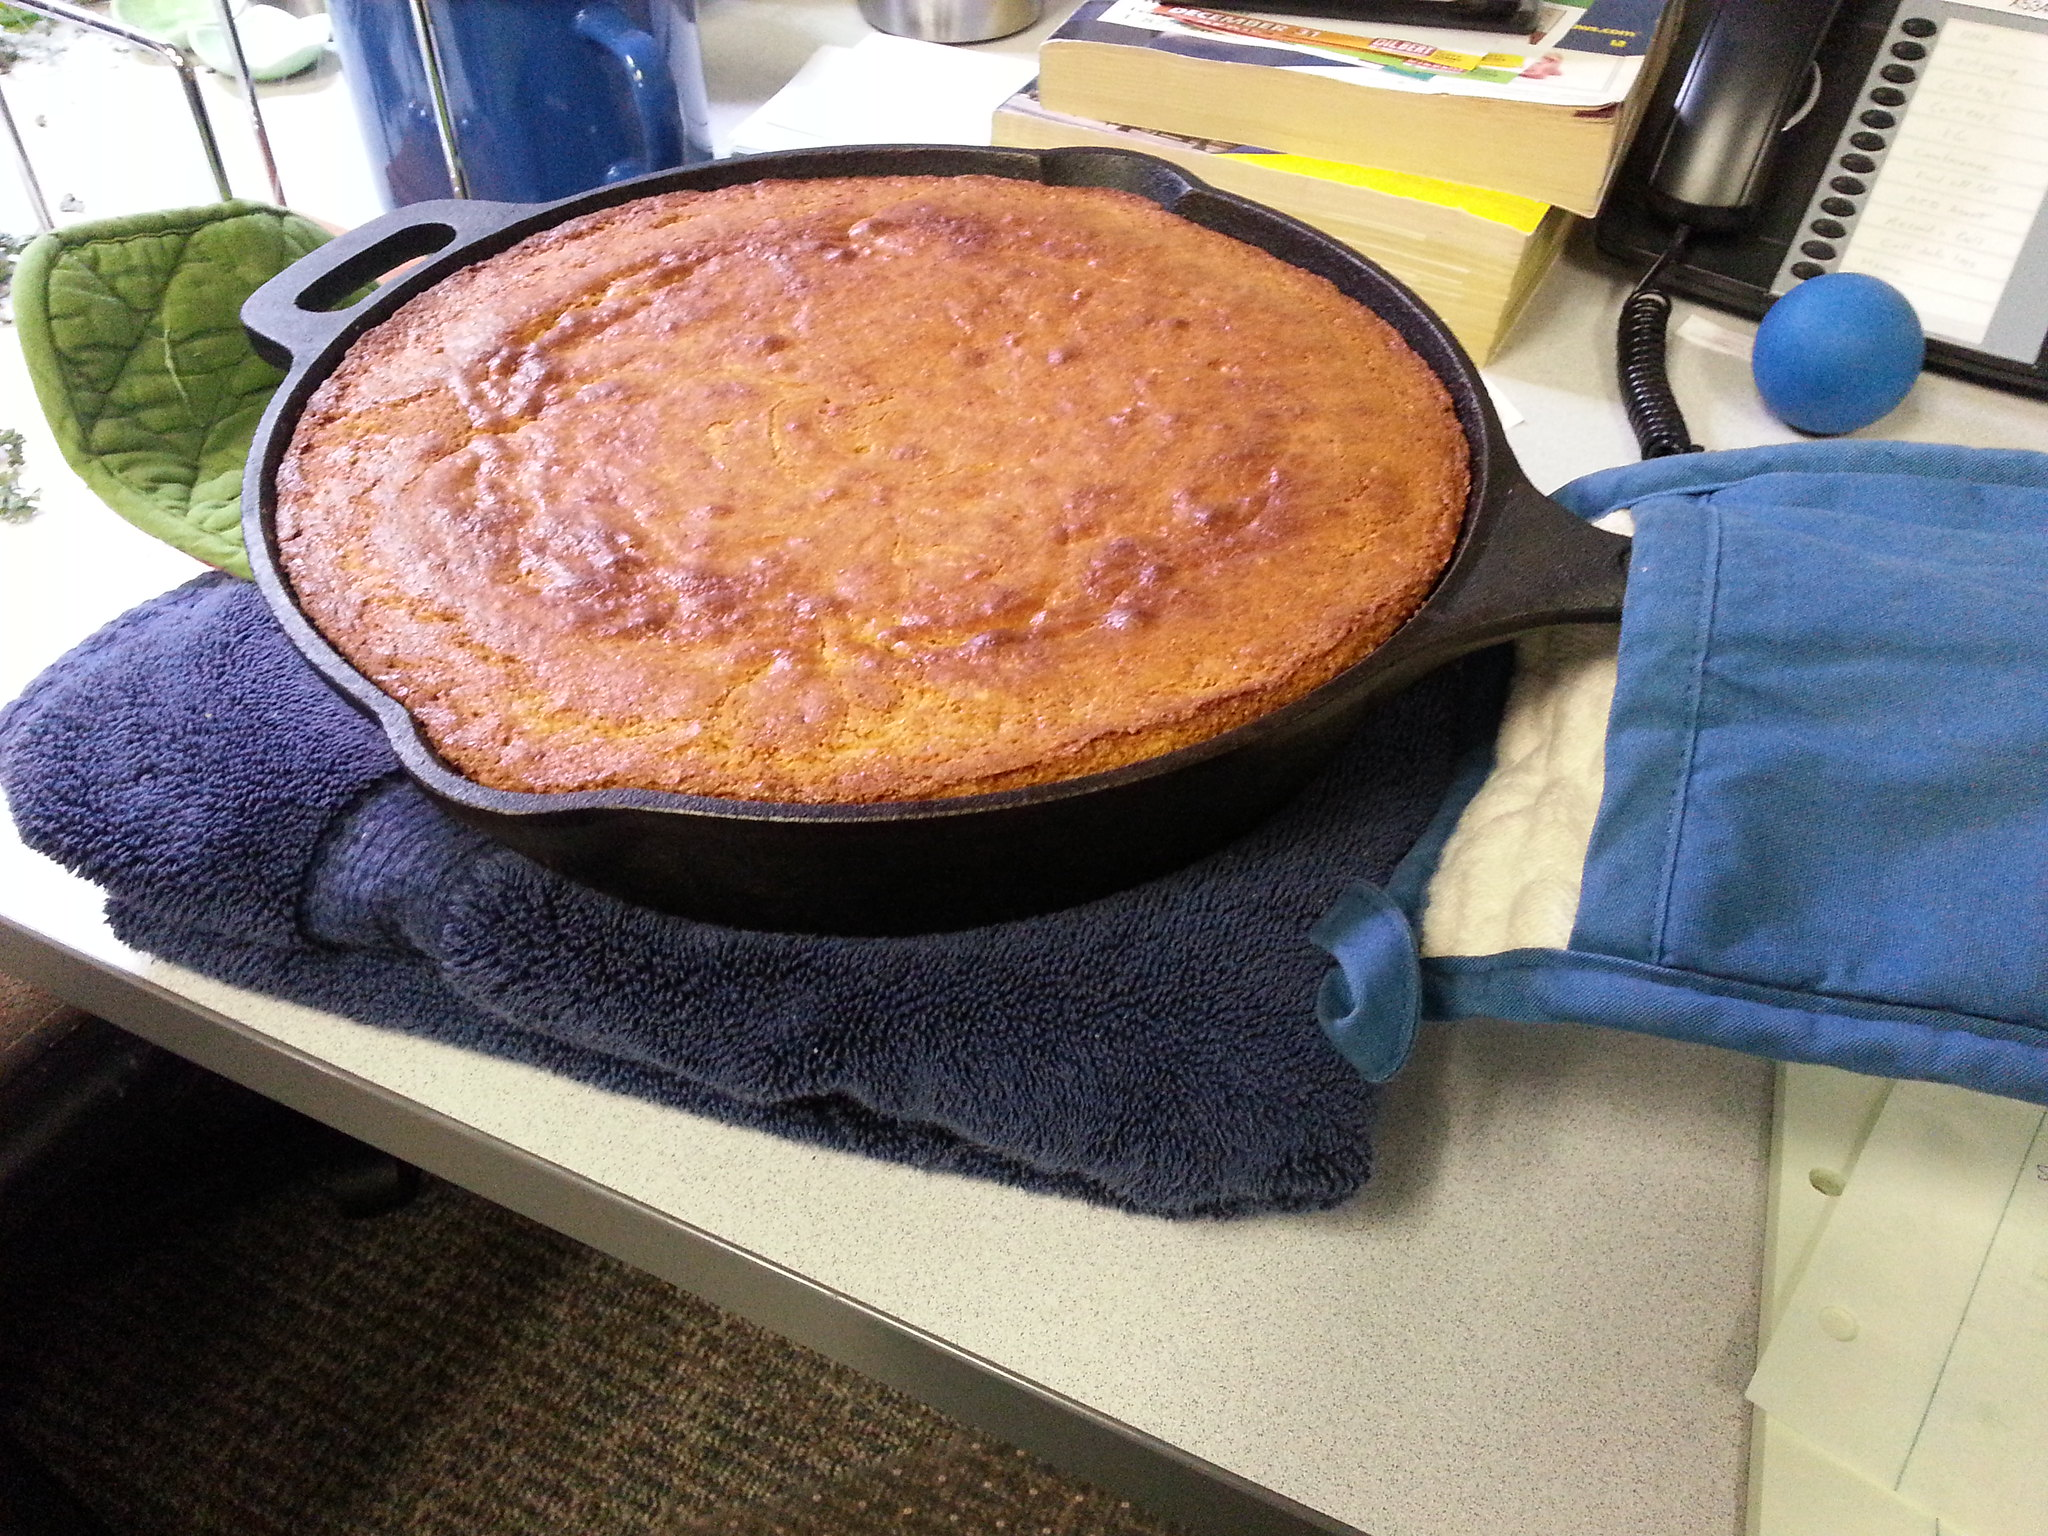 Best. Cornbread. Ever.